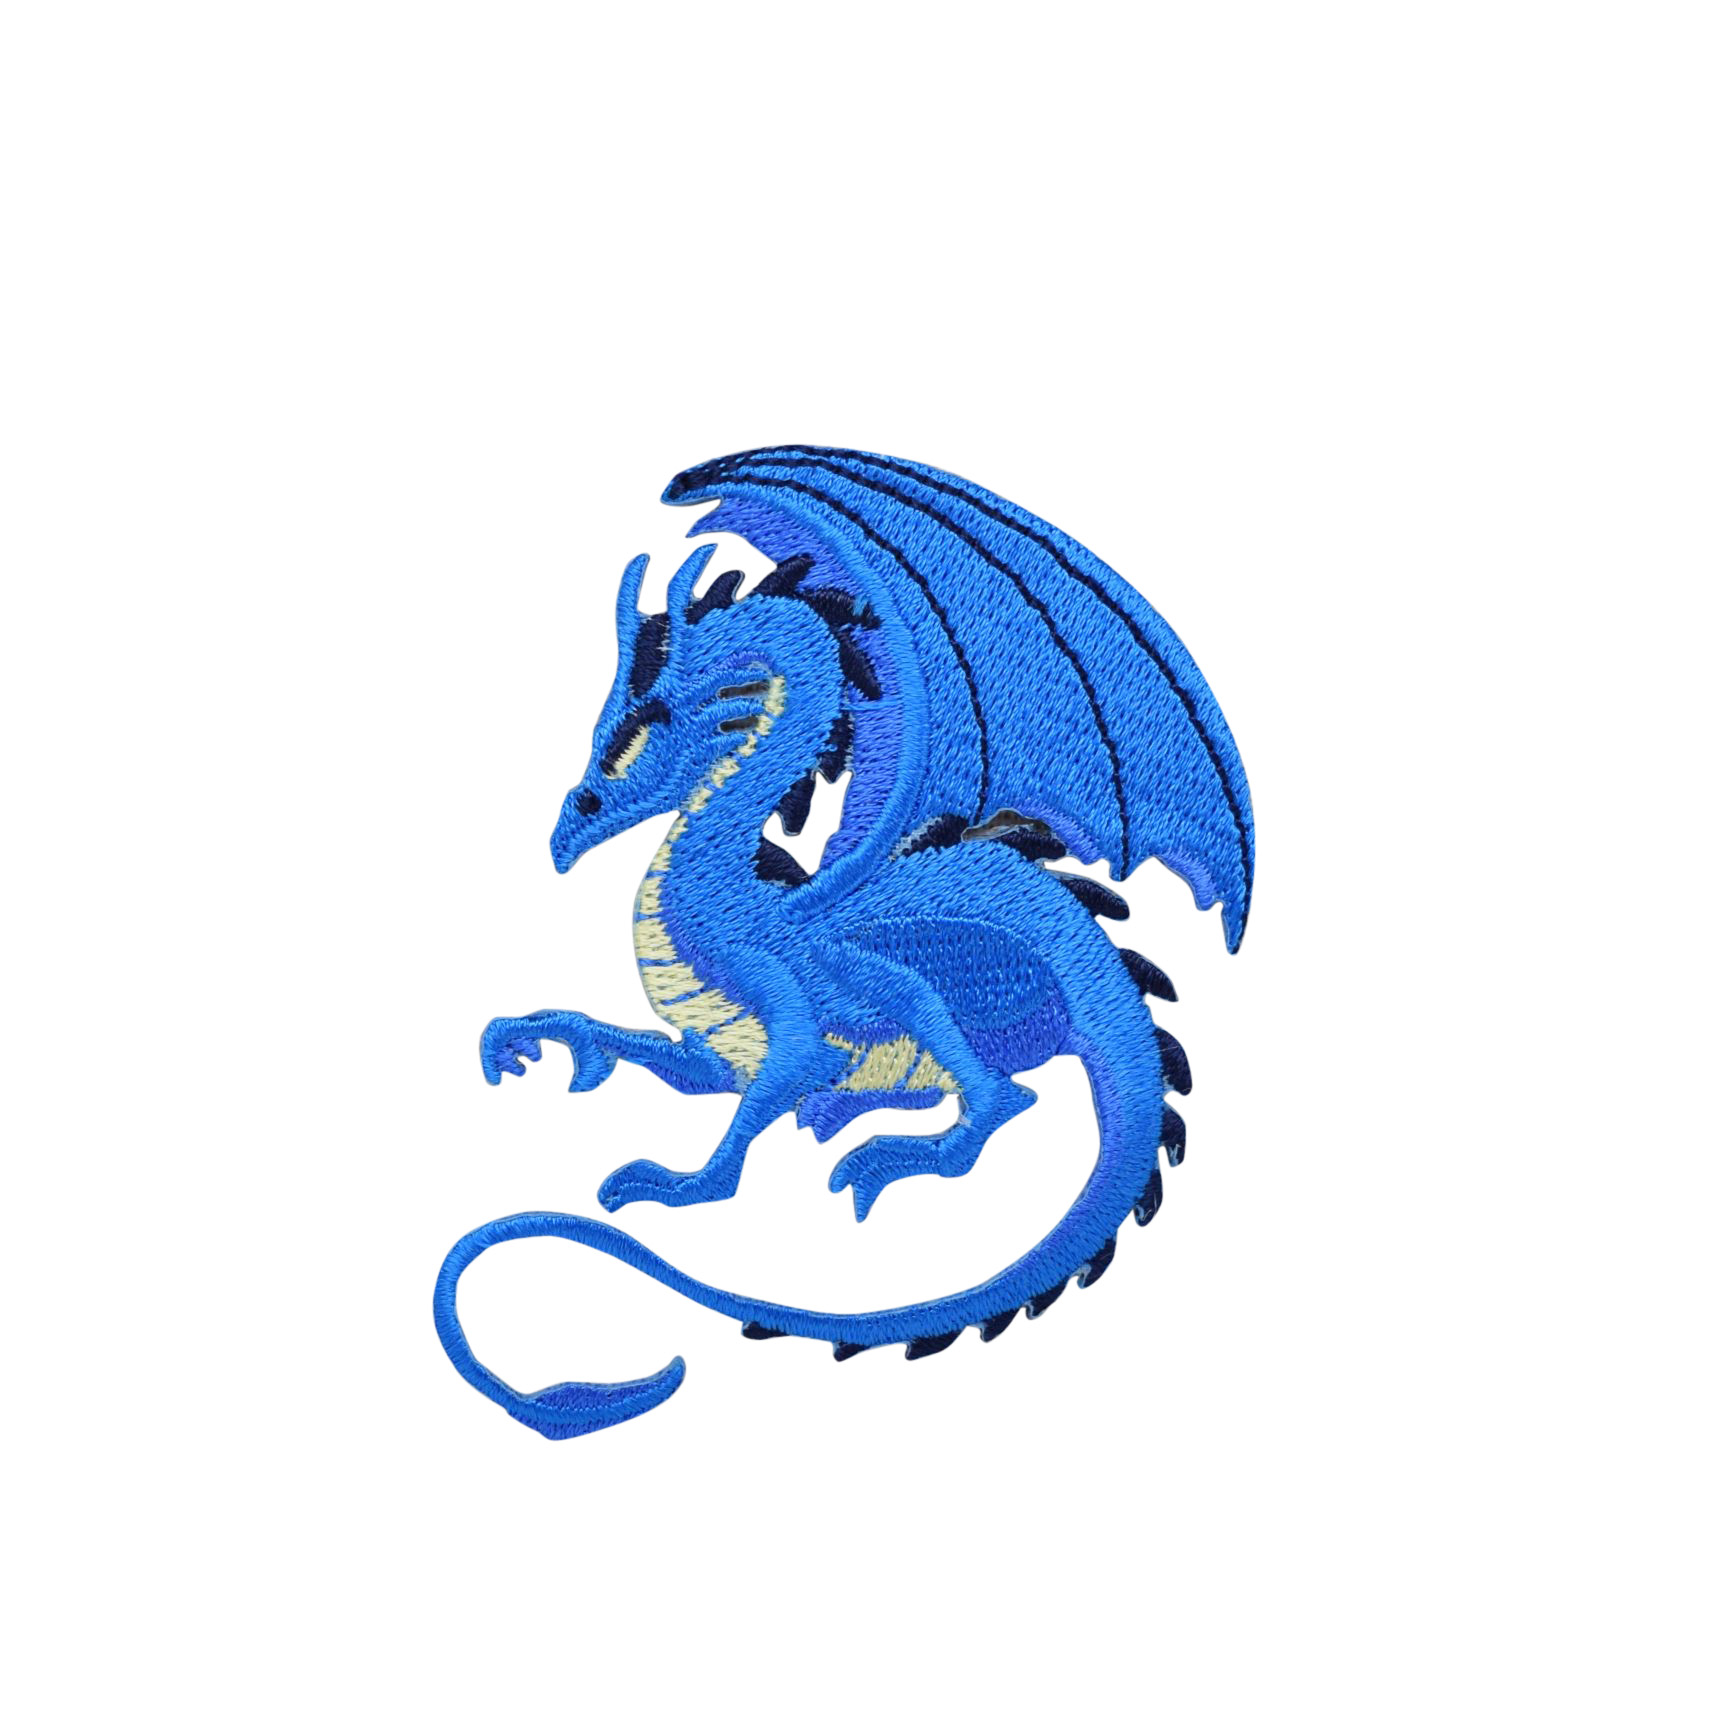 Blue Dragon - Facing Left - Legendary/Mythical/Fantasy - Iron on Applique/Embroidered Patch